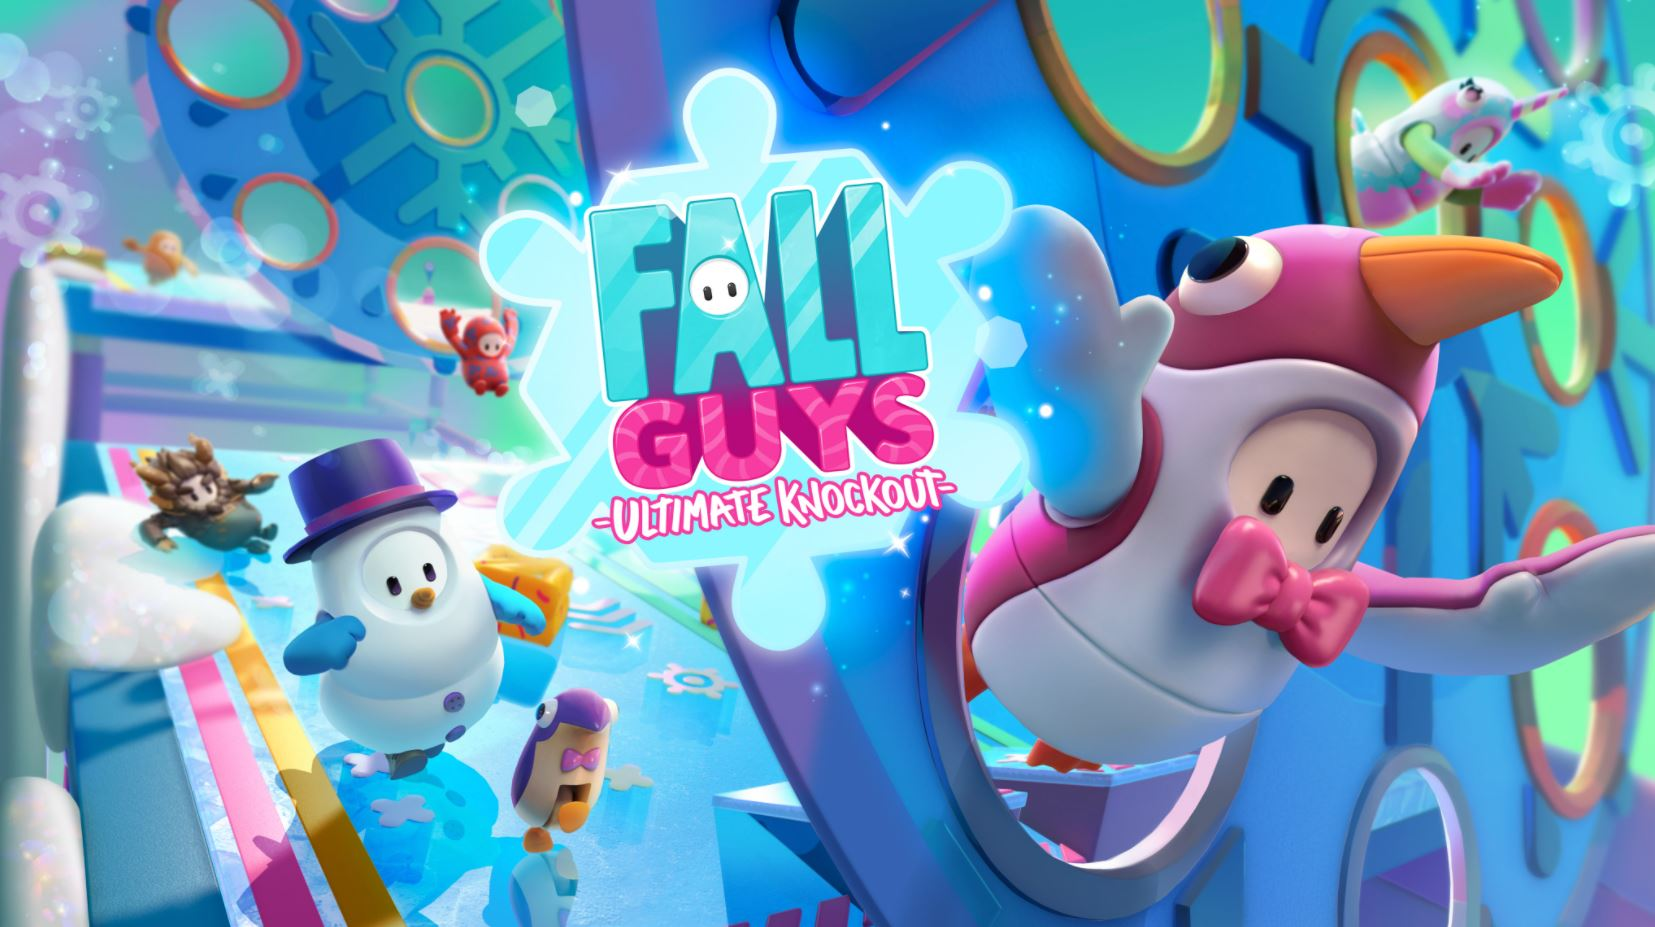 fall-guys-season-3-titled-winter-knockout-seemingly-set-to-be-revealed-at-the-game-awards